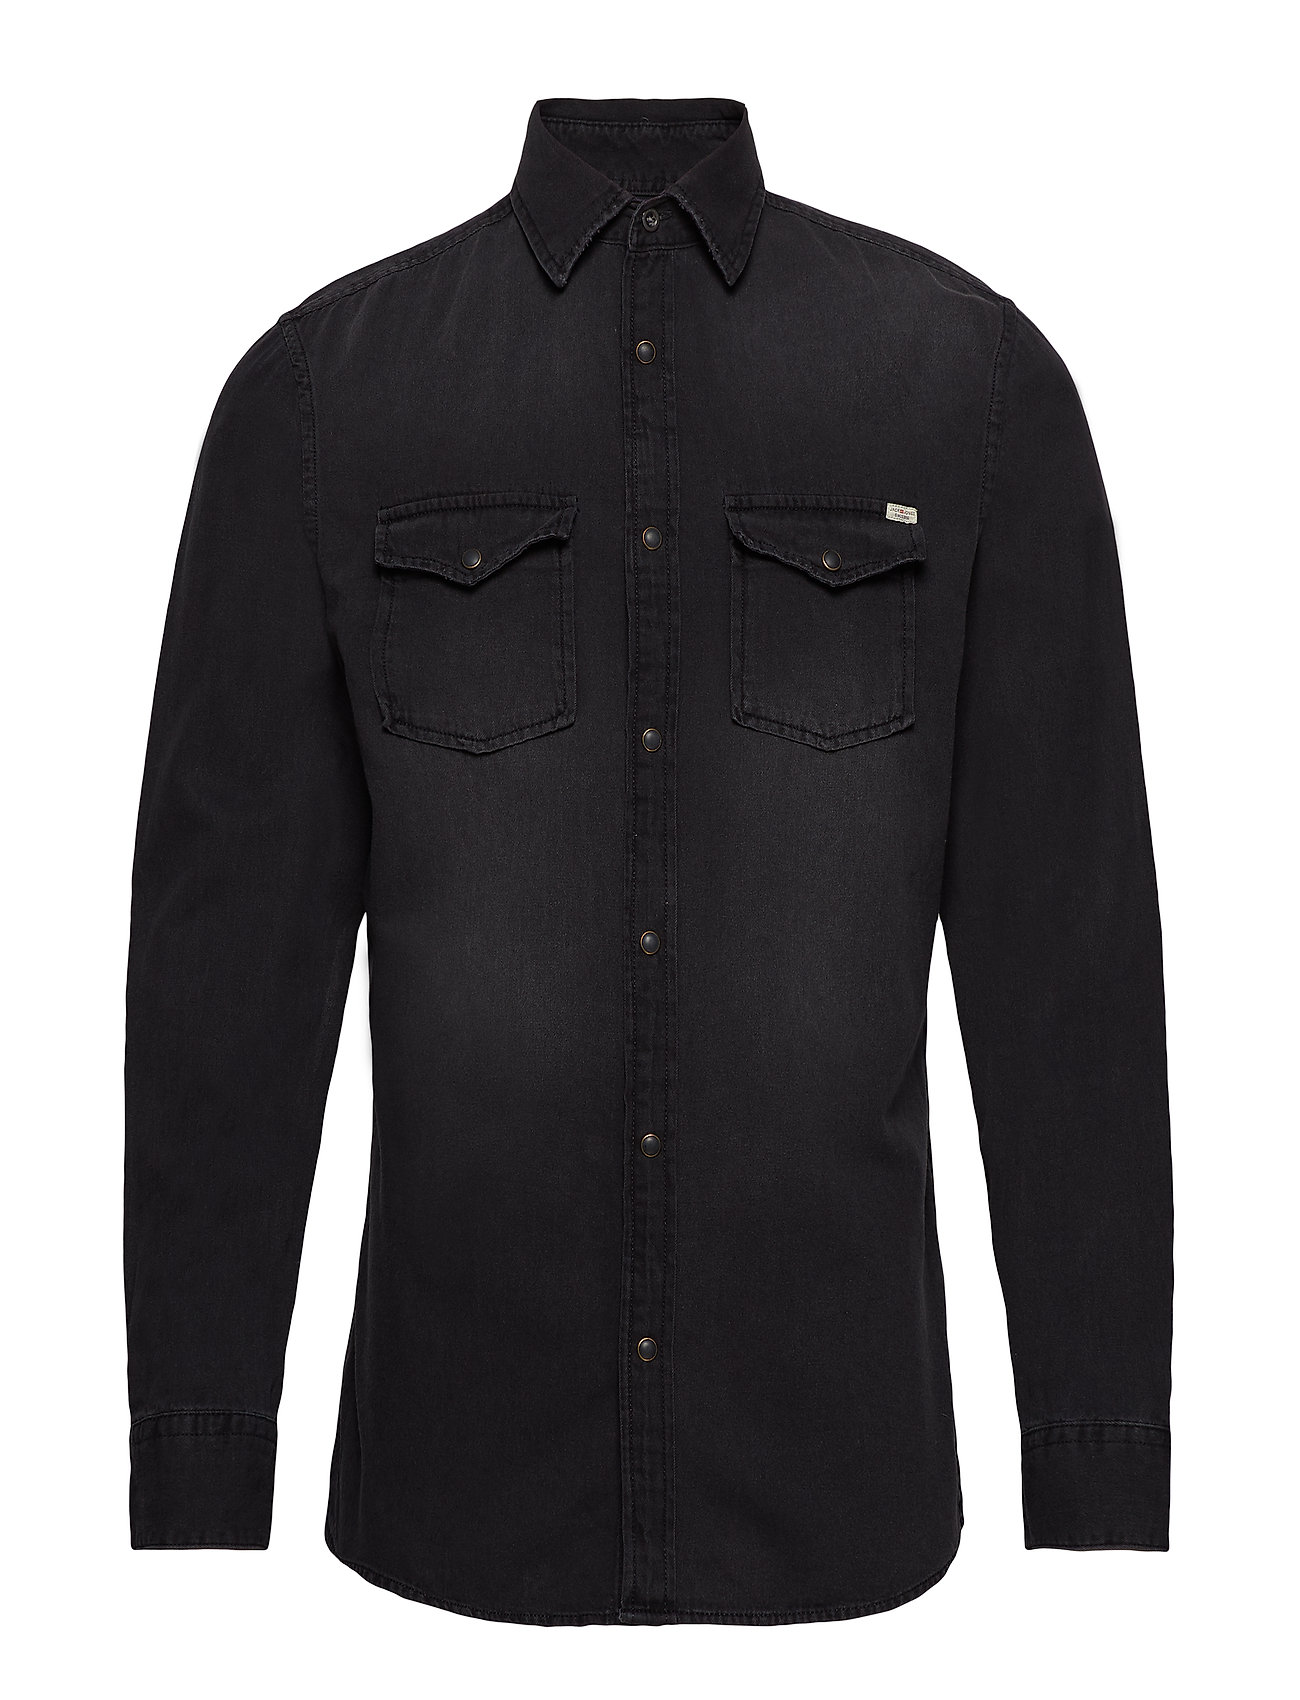 Jack & Jones JJESHERIDAN SHIRT L/S NOOS - BLACK DENIM